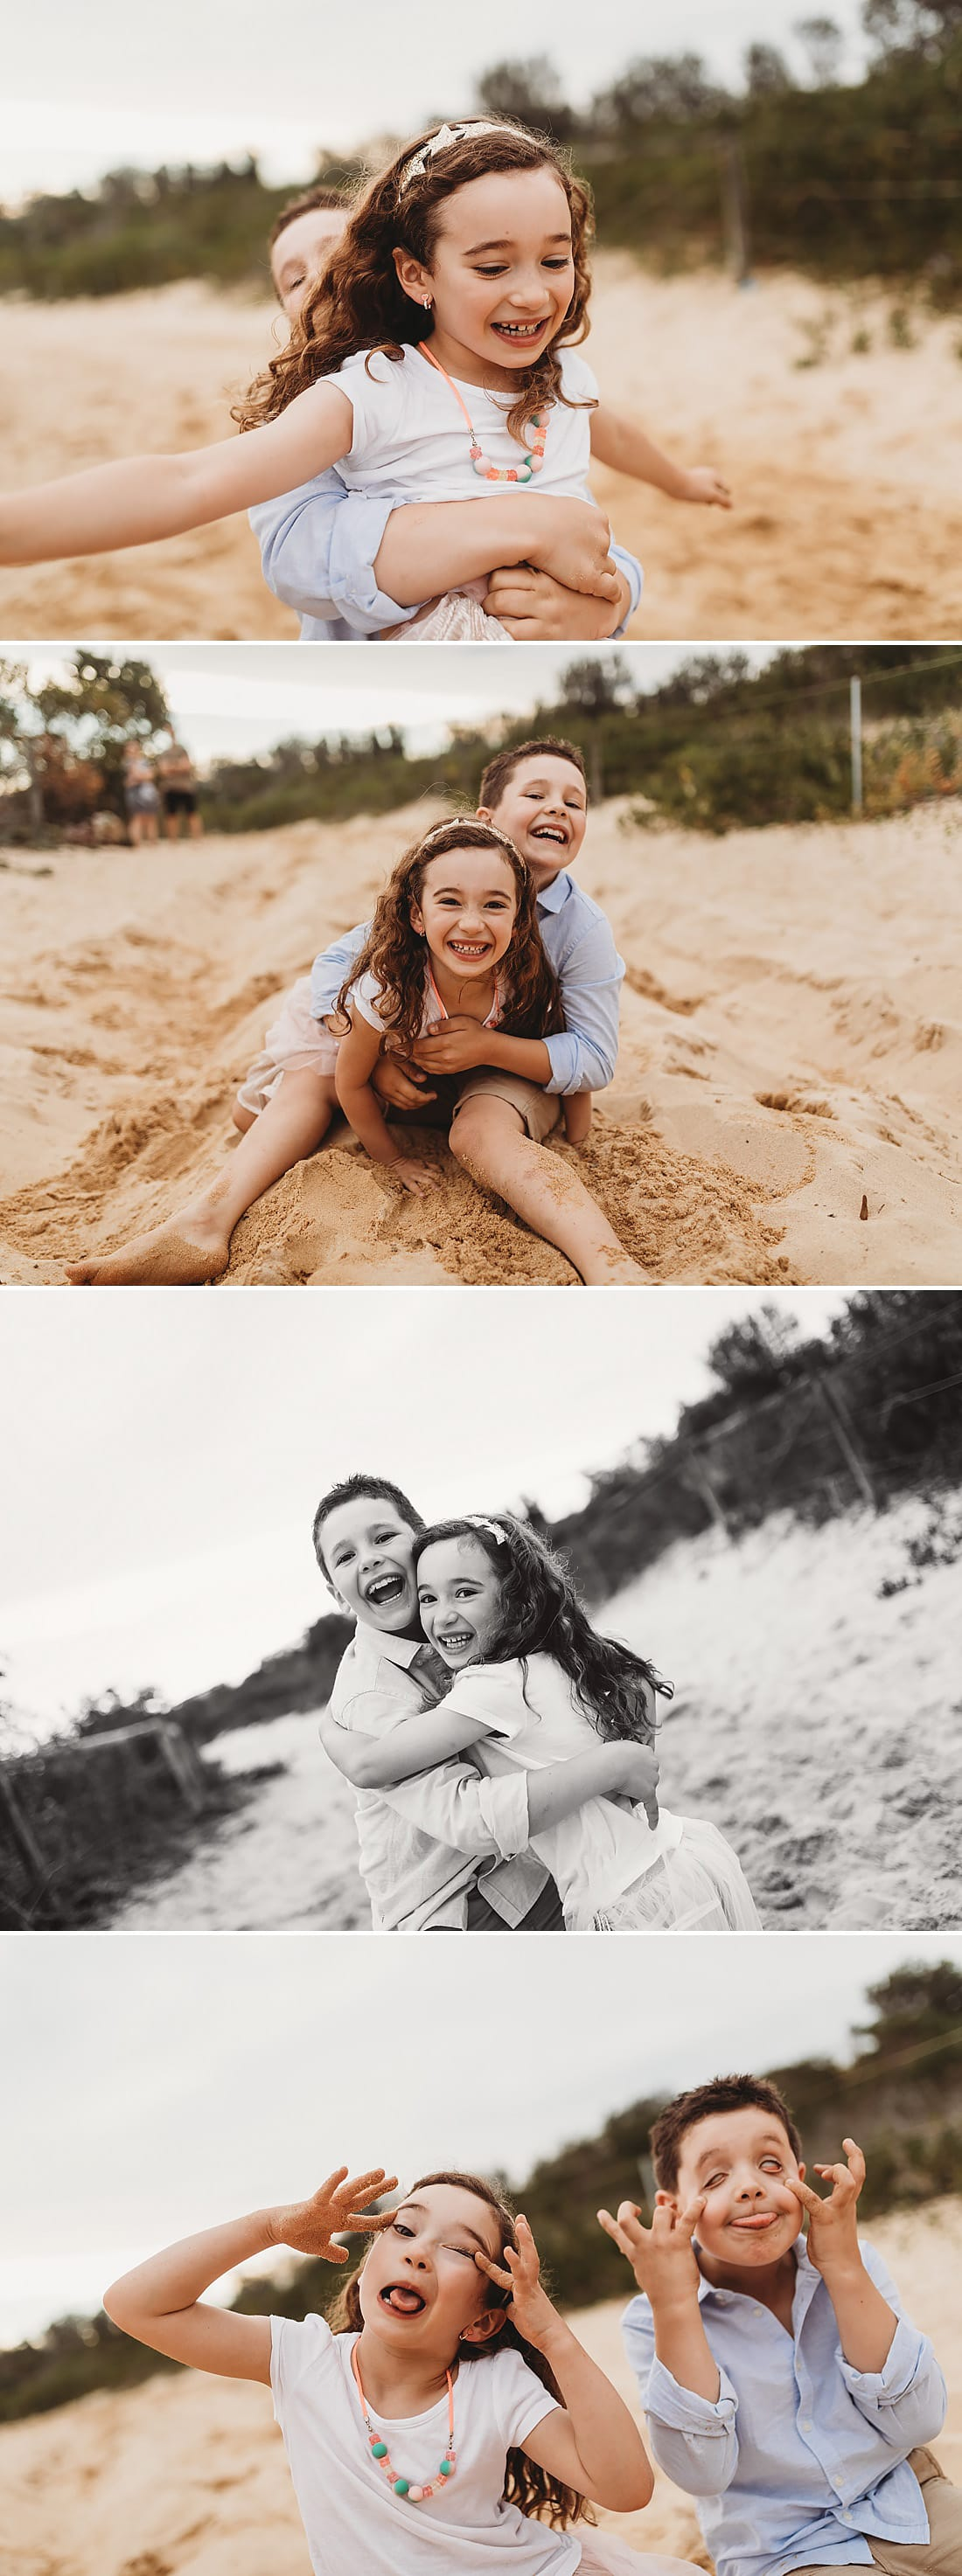 Sibling-family-photography-sutherland-shire-sydney